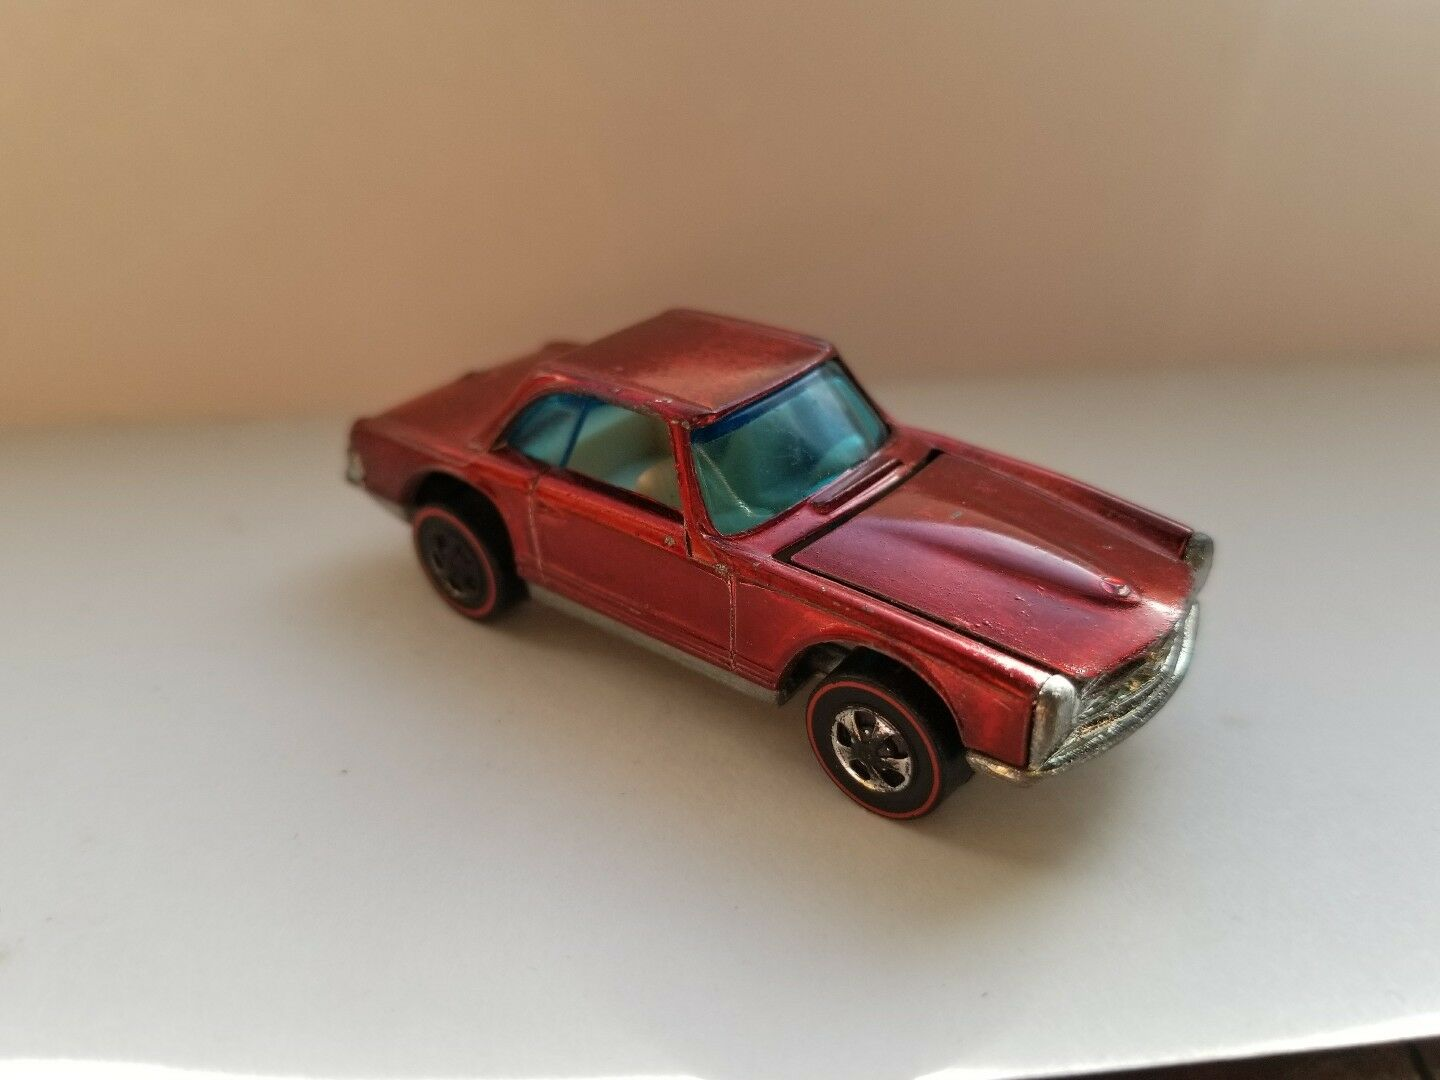 Rojo Mercedes Benz 280SL Hot Wheels rojoline Hk Interior blancoo 1969 Clean